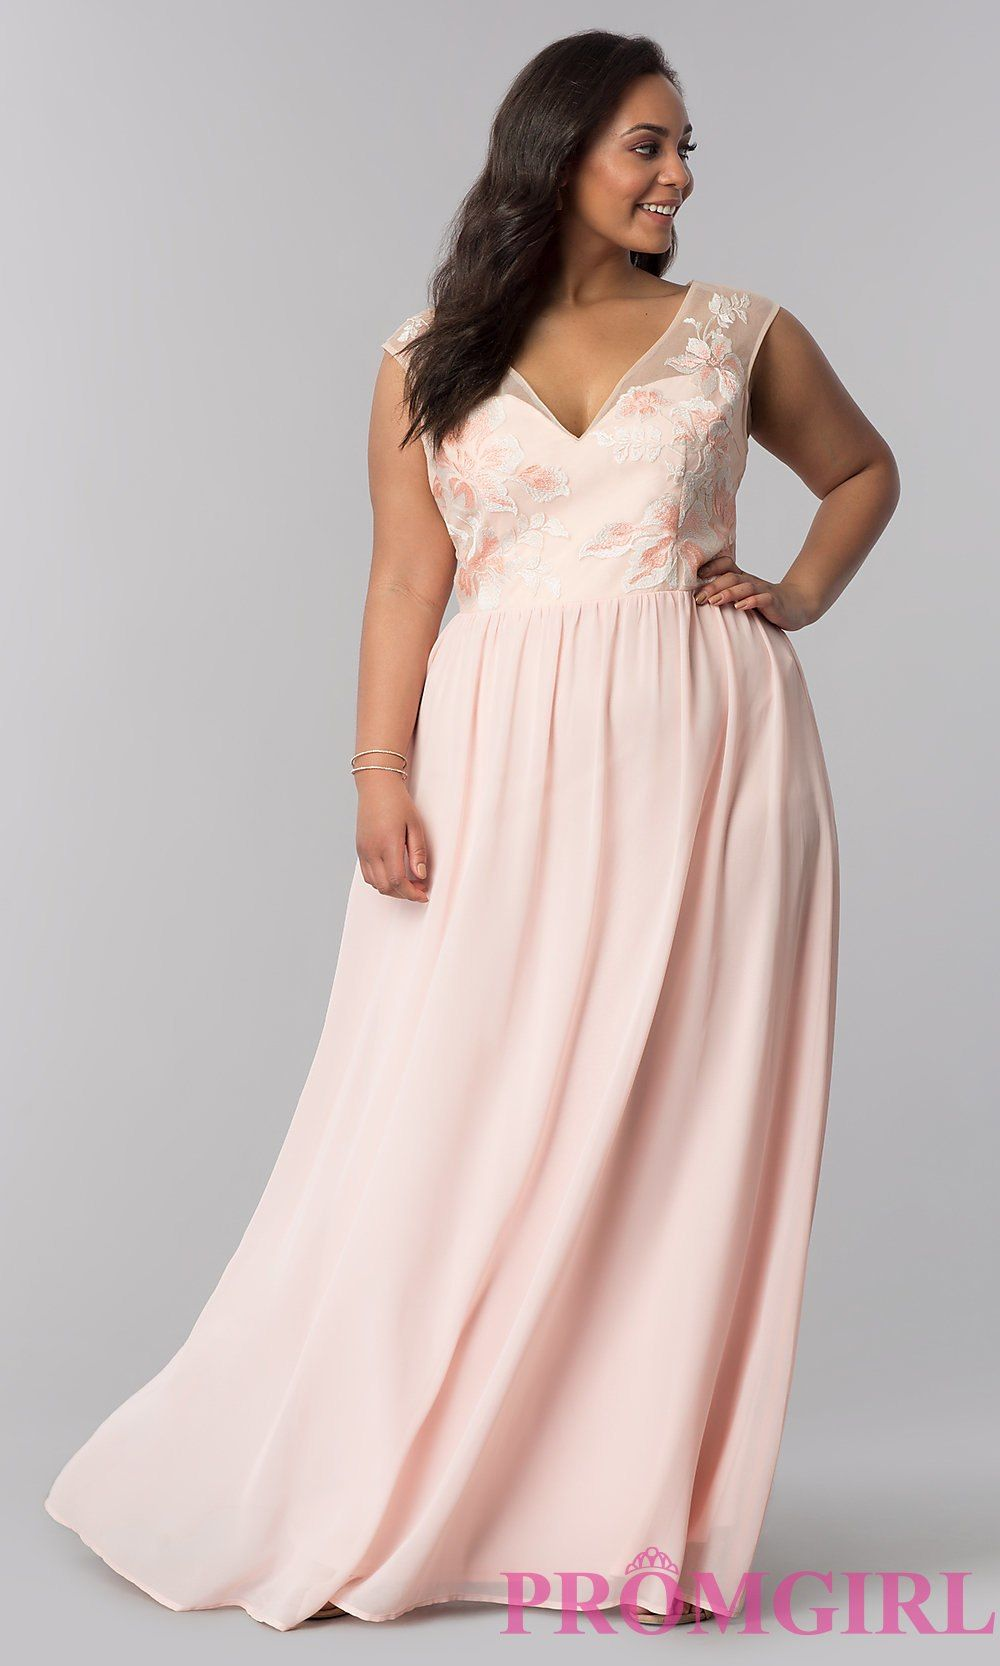 c661bc2c6b5 V-Neck Plus-Size Prom Dress in Blush Pink - PromGirl